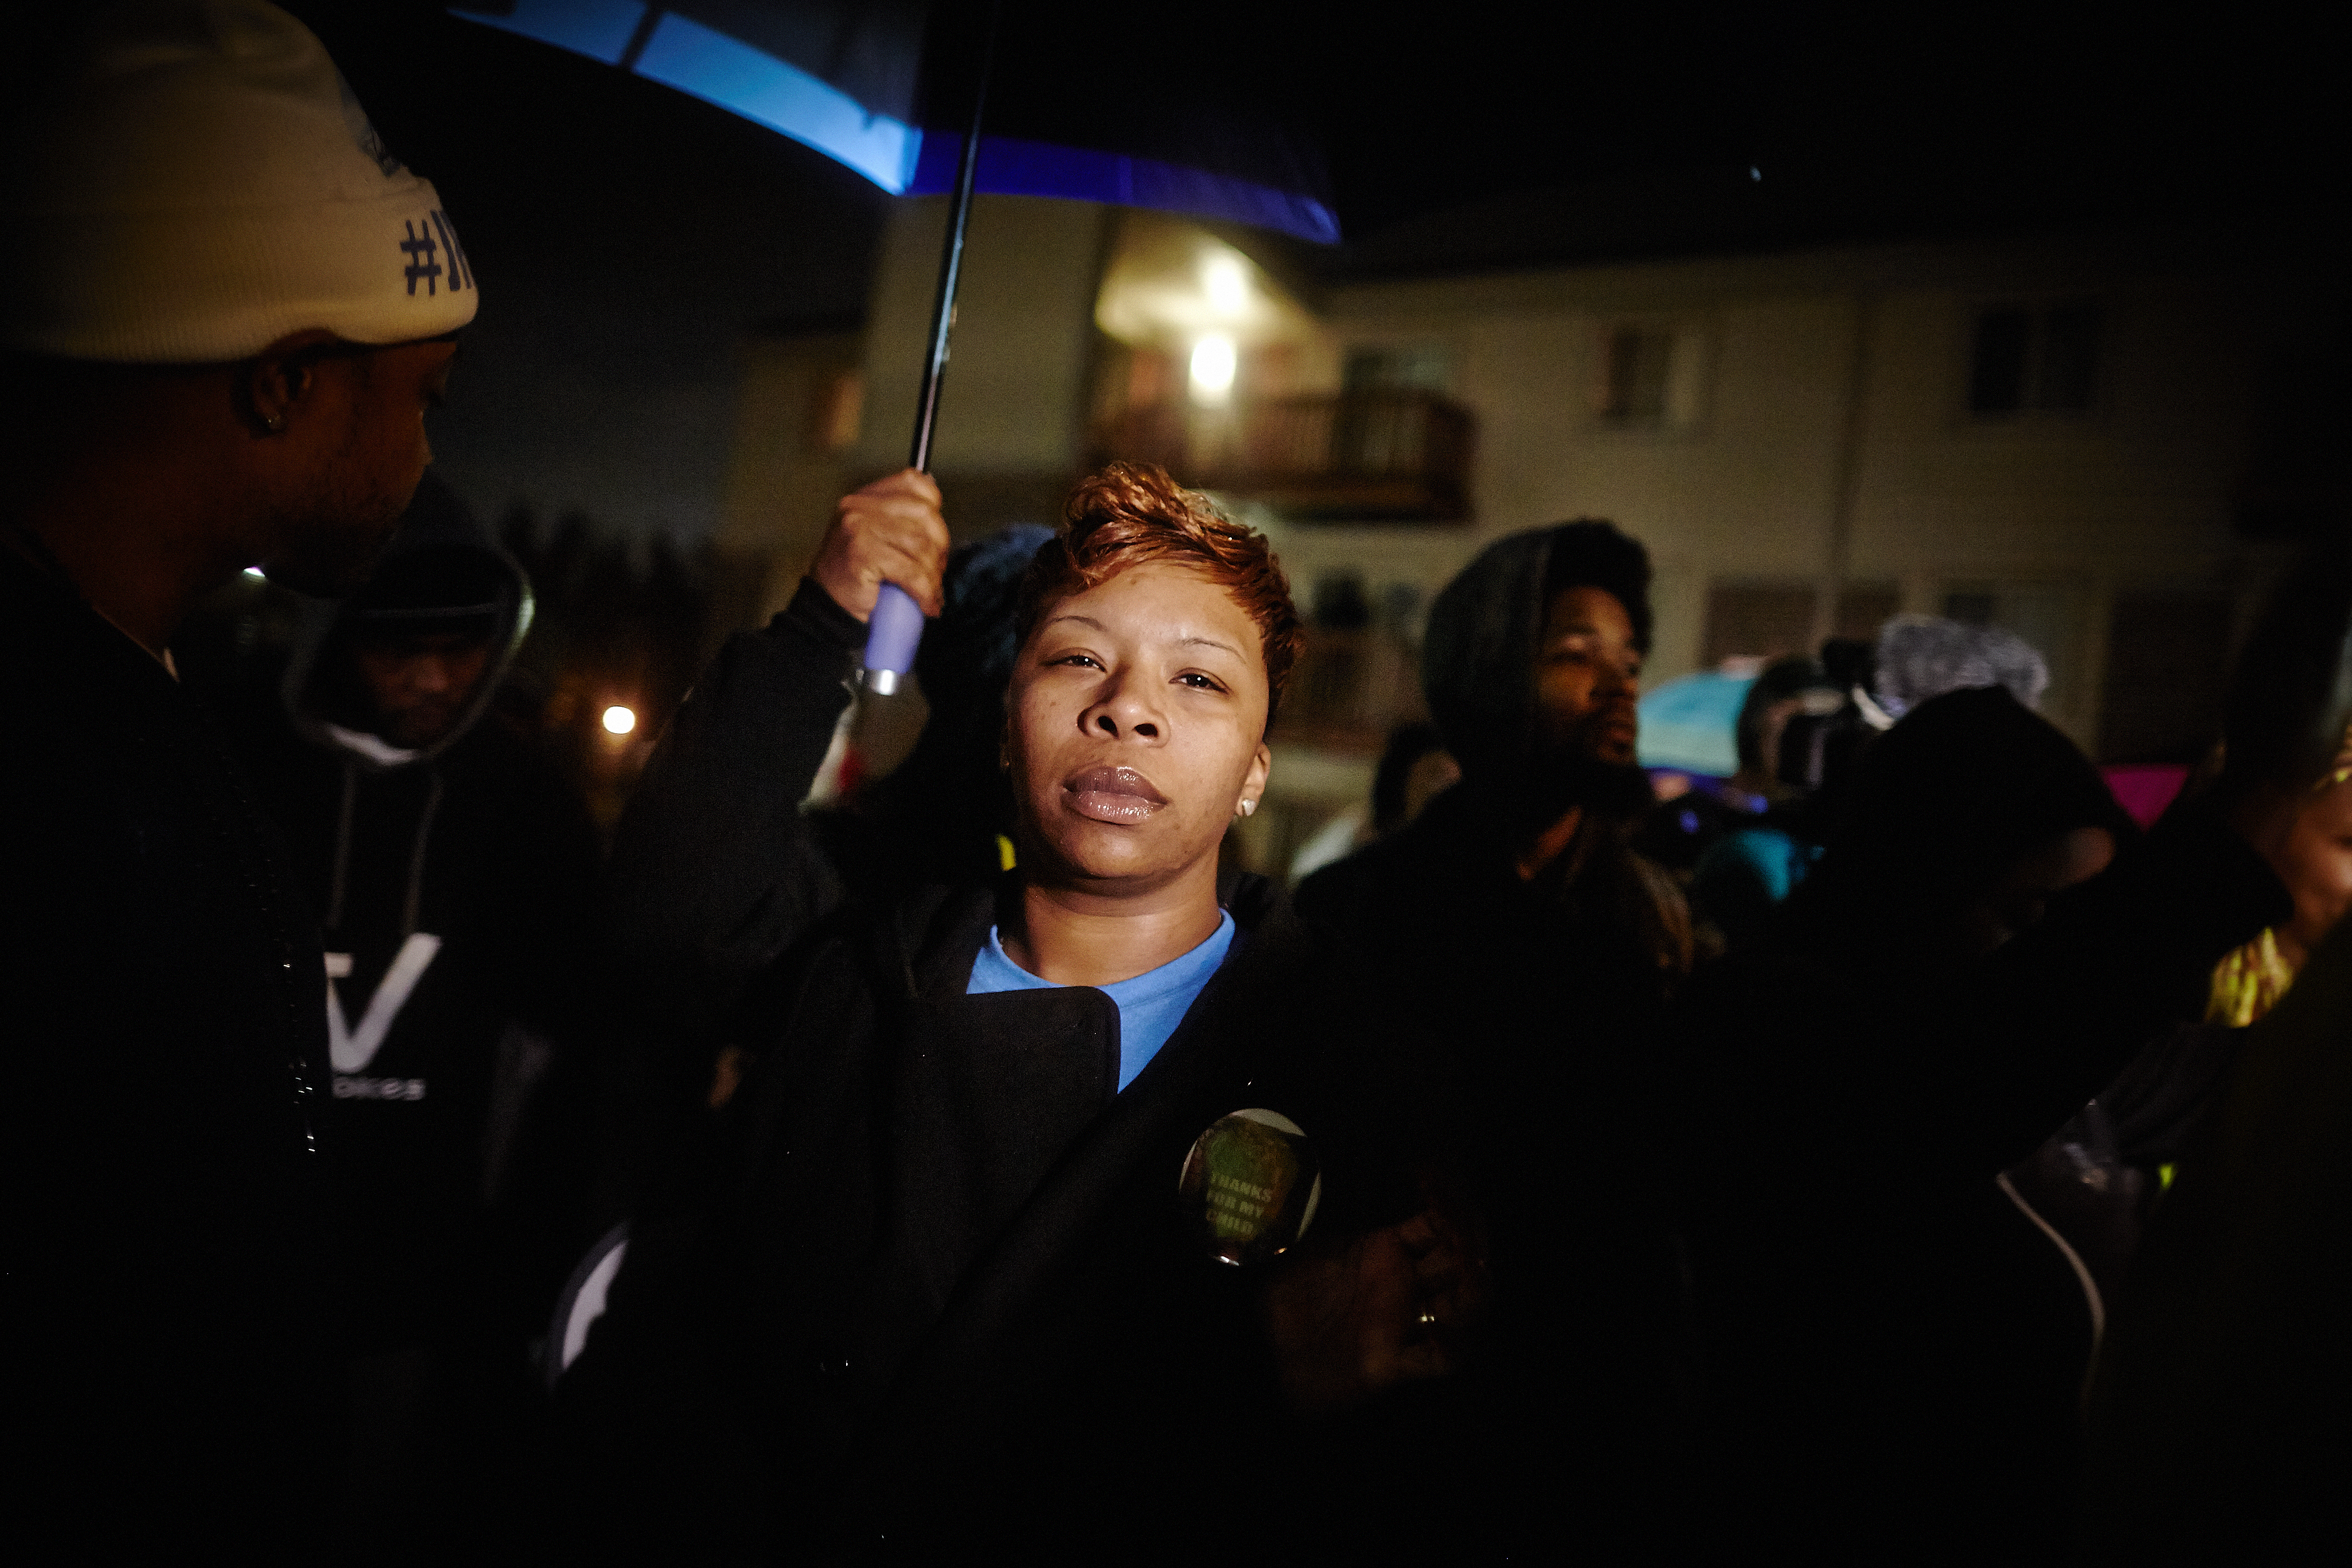 Lesley McSpadden, the mother of slain Ferguson teen Michael Brown talks to a crowd of protesters in advance of the grand-jury verdict on police officer Darren Wilson on Nov. 22, 2014